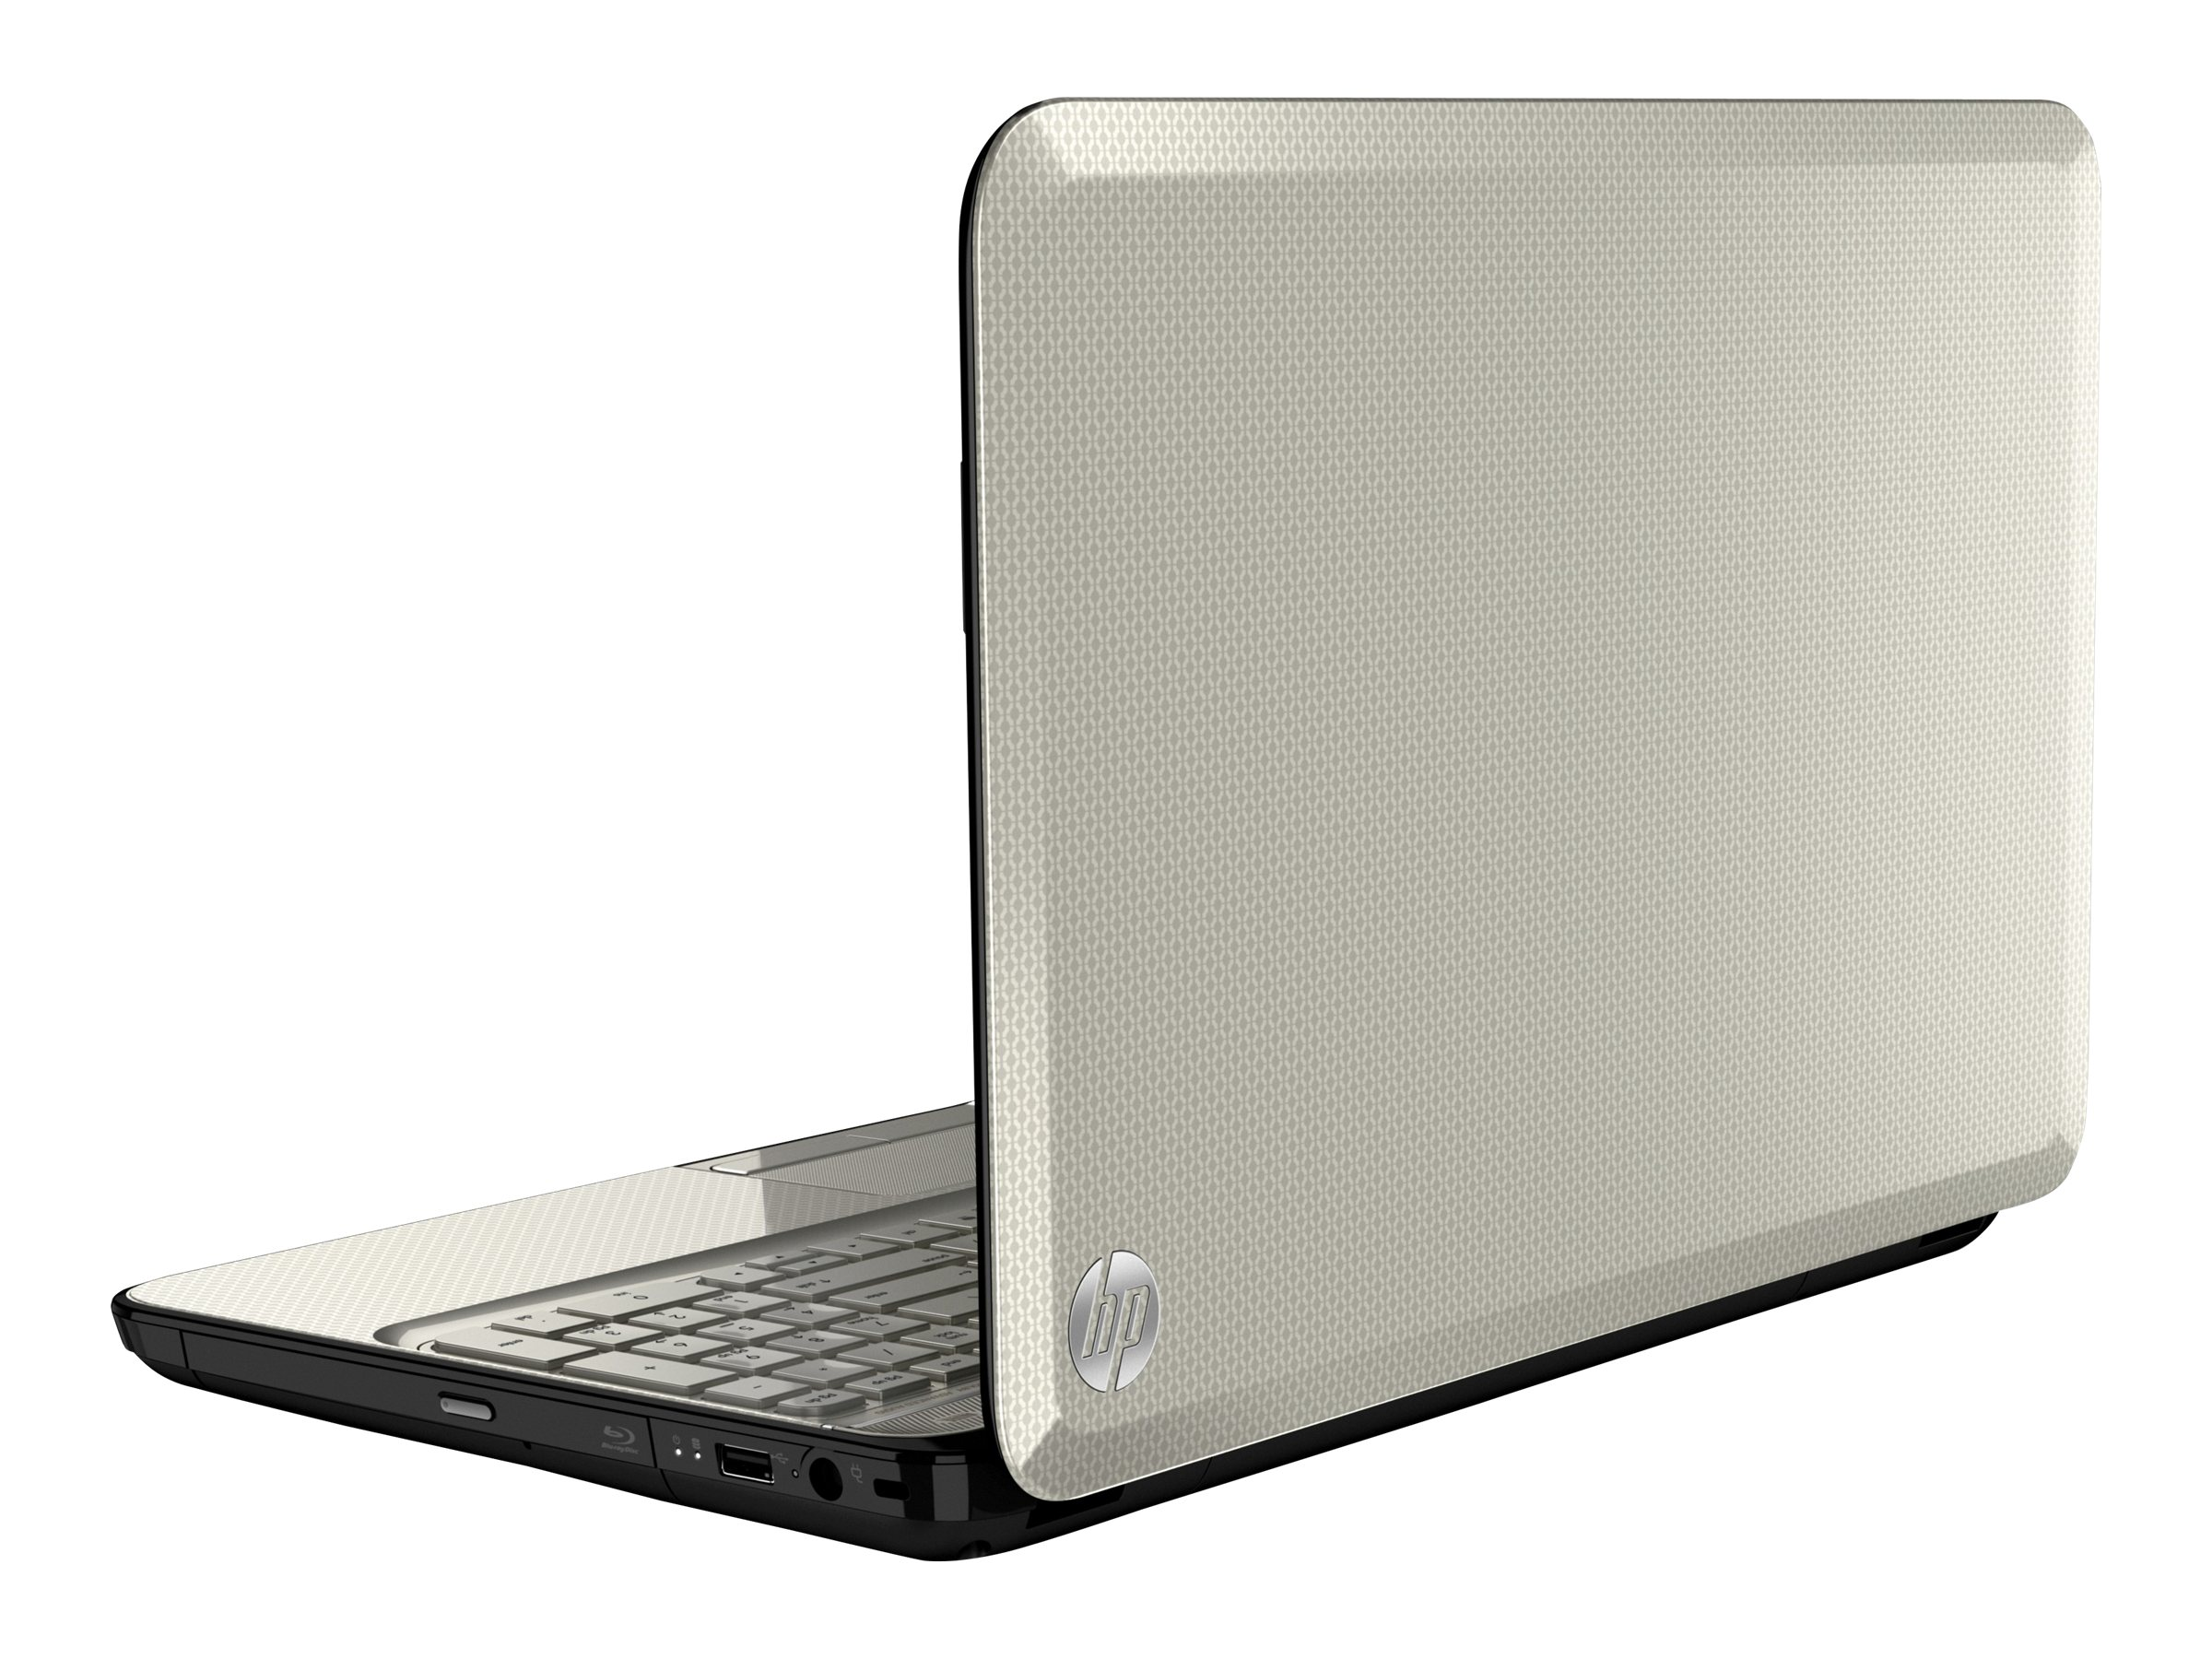 HP Pavilion Core i3-2350M 4GB 500GB 15.6